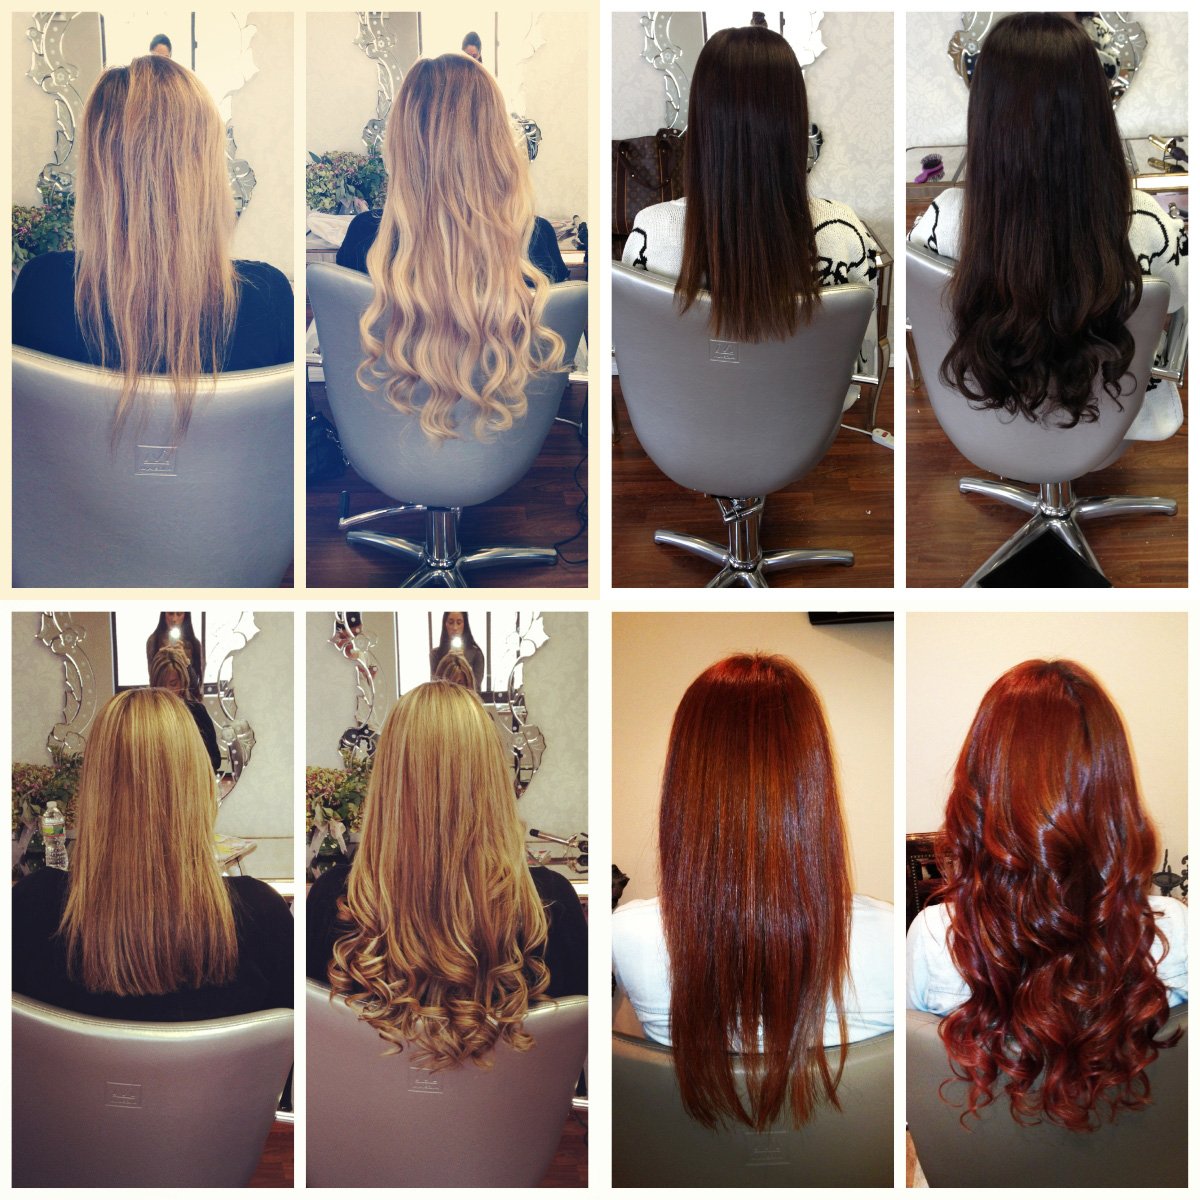 Changing Your Look And Style With All Natural Remy Real Hair Extensions